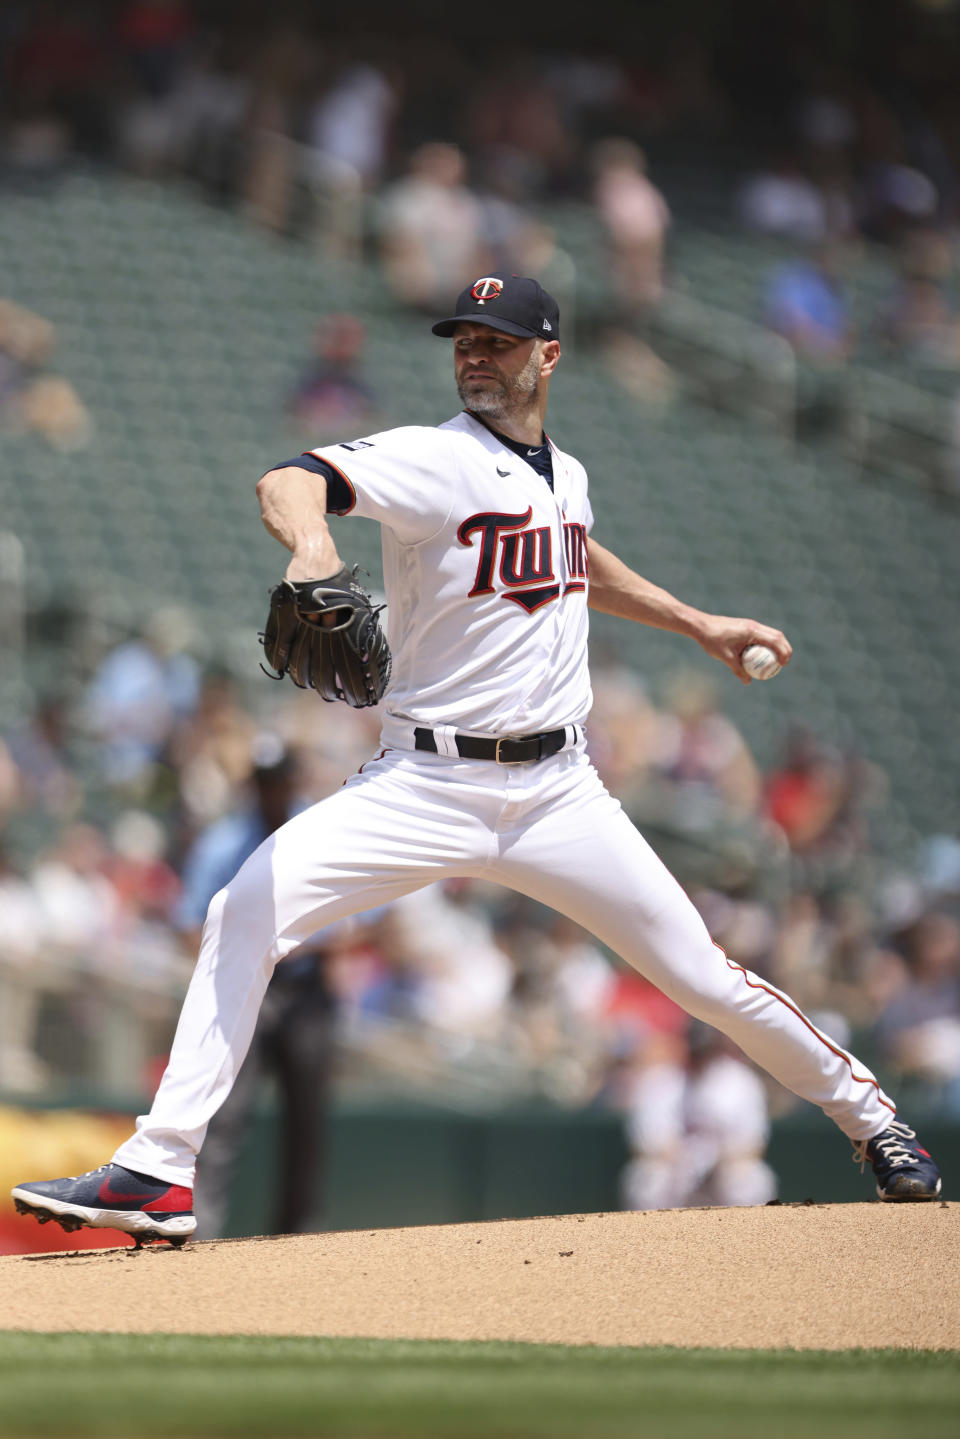 Minnesota Twins pitcher J.A. Happ throws against the Cleveland Indians during the first inning of a baseball game, Sunday, June 27, 2021, in Minneapolis. (AP Photo/Stacy Bengs)